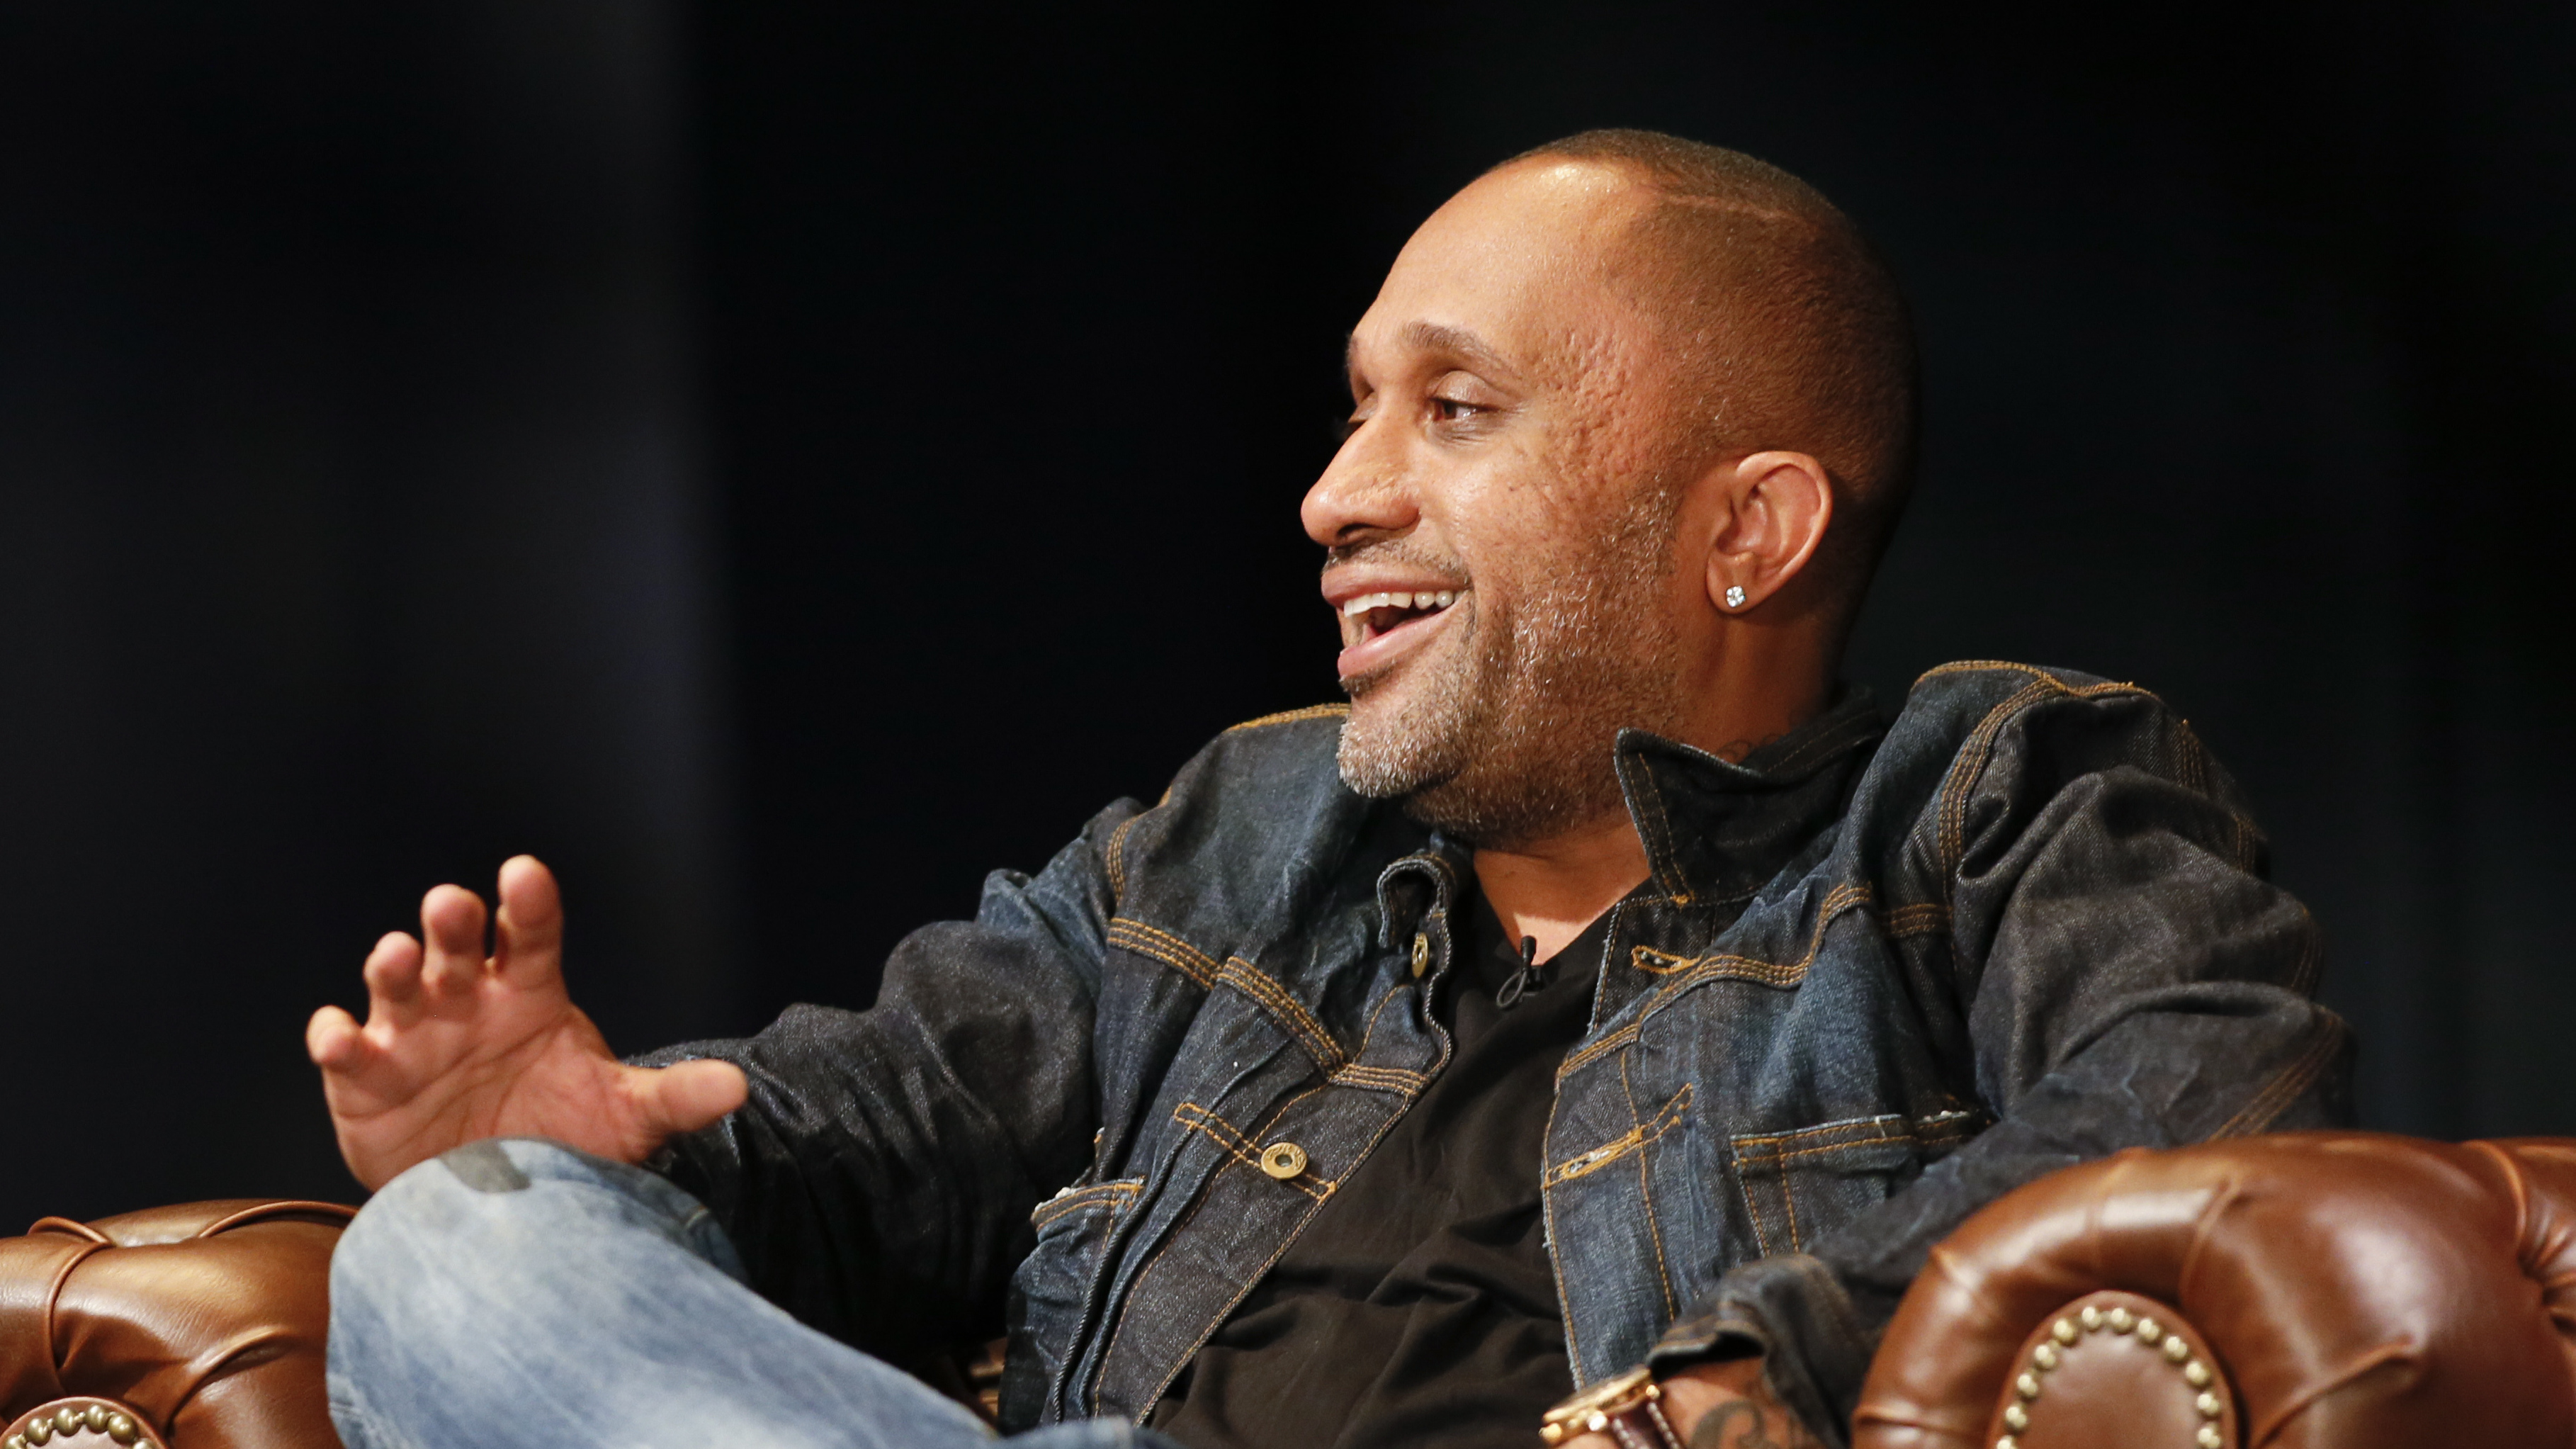 Kenya Barris On 'Black-ish' And What Kids Lose When They Grow Up With More